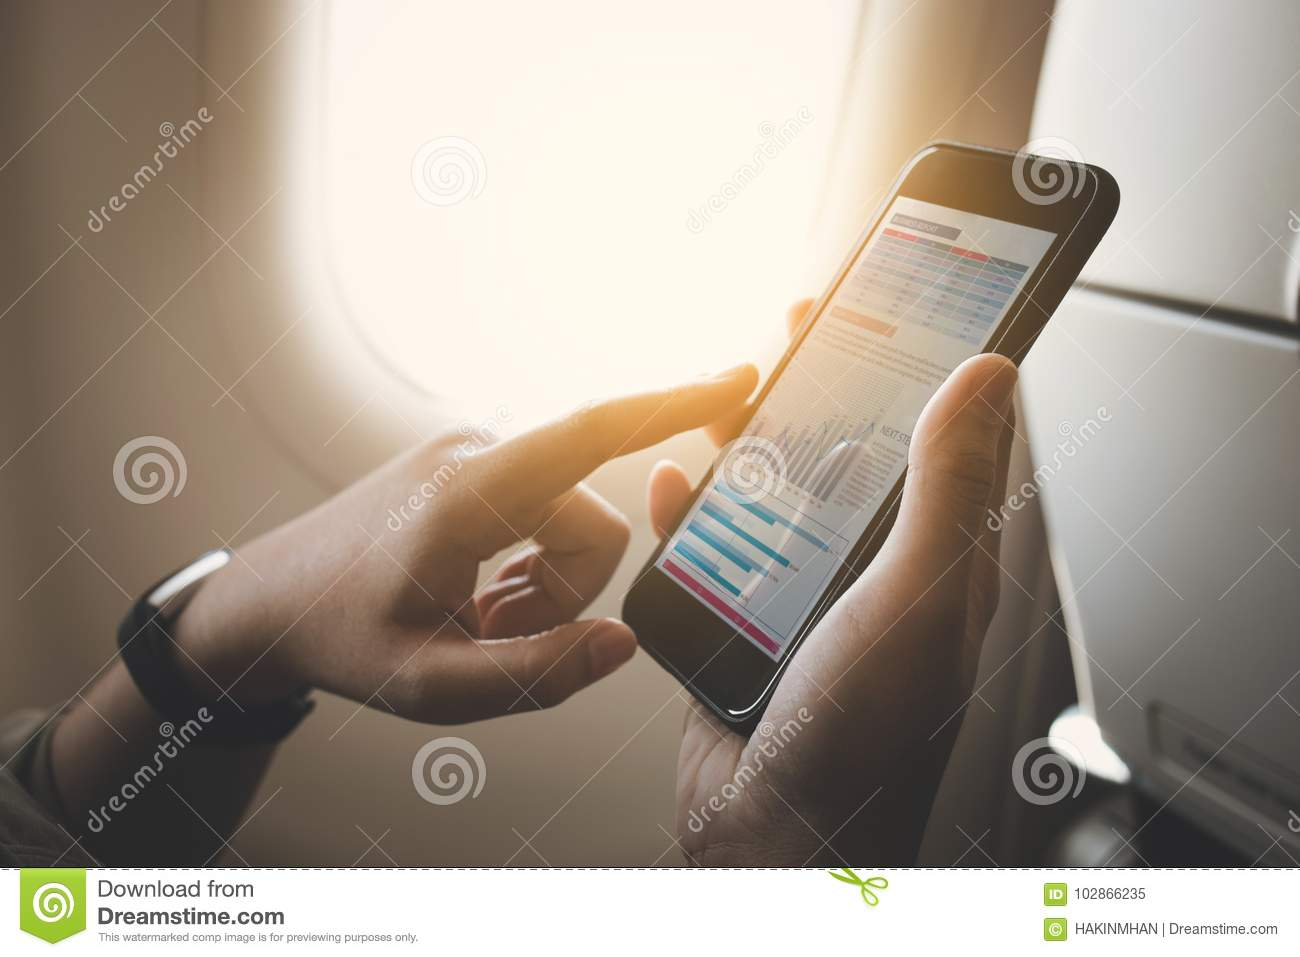 Download Businesswoman On Plane Using Smartphone With Graph On Screen.Business Technology Stock Image - Image of female, holiday: 102866235